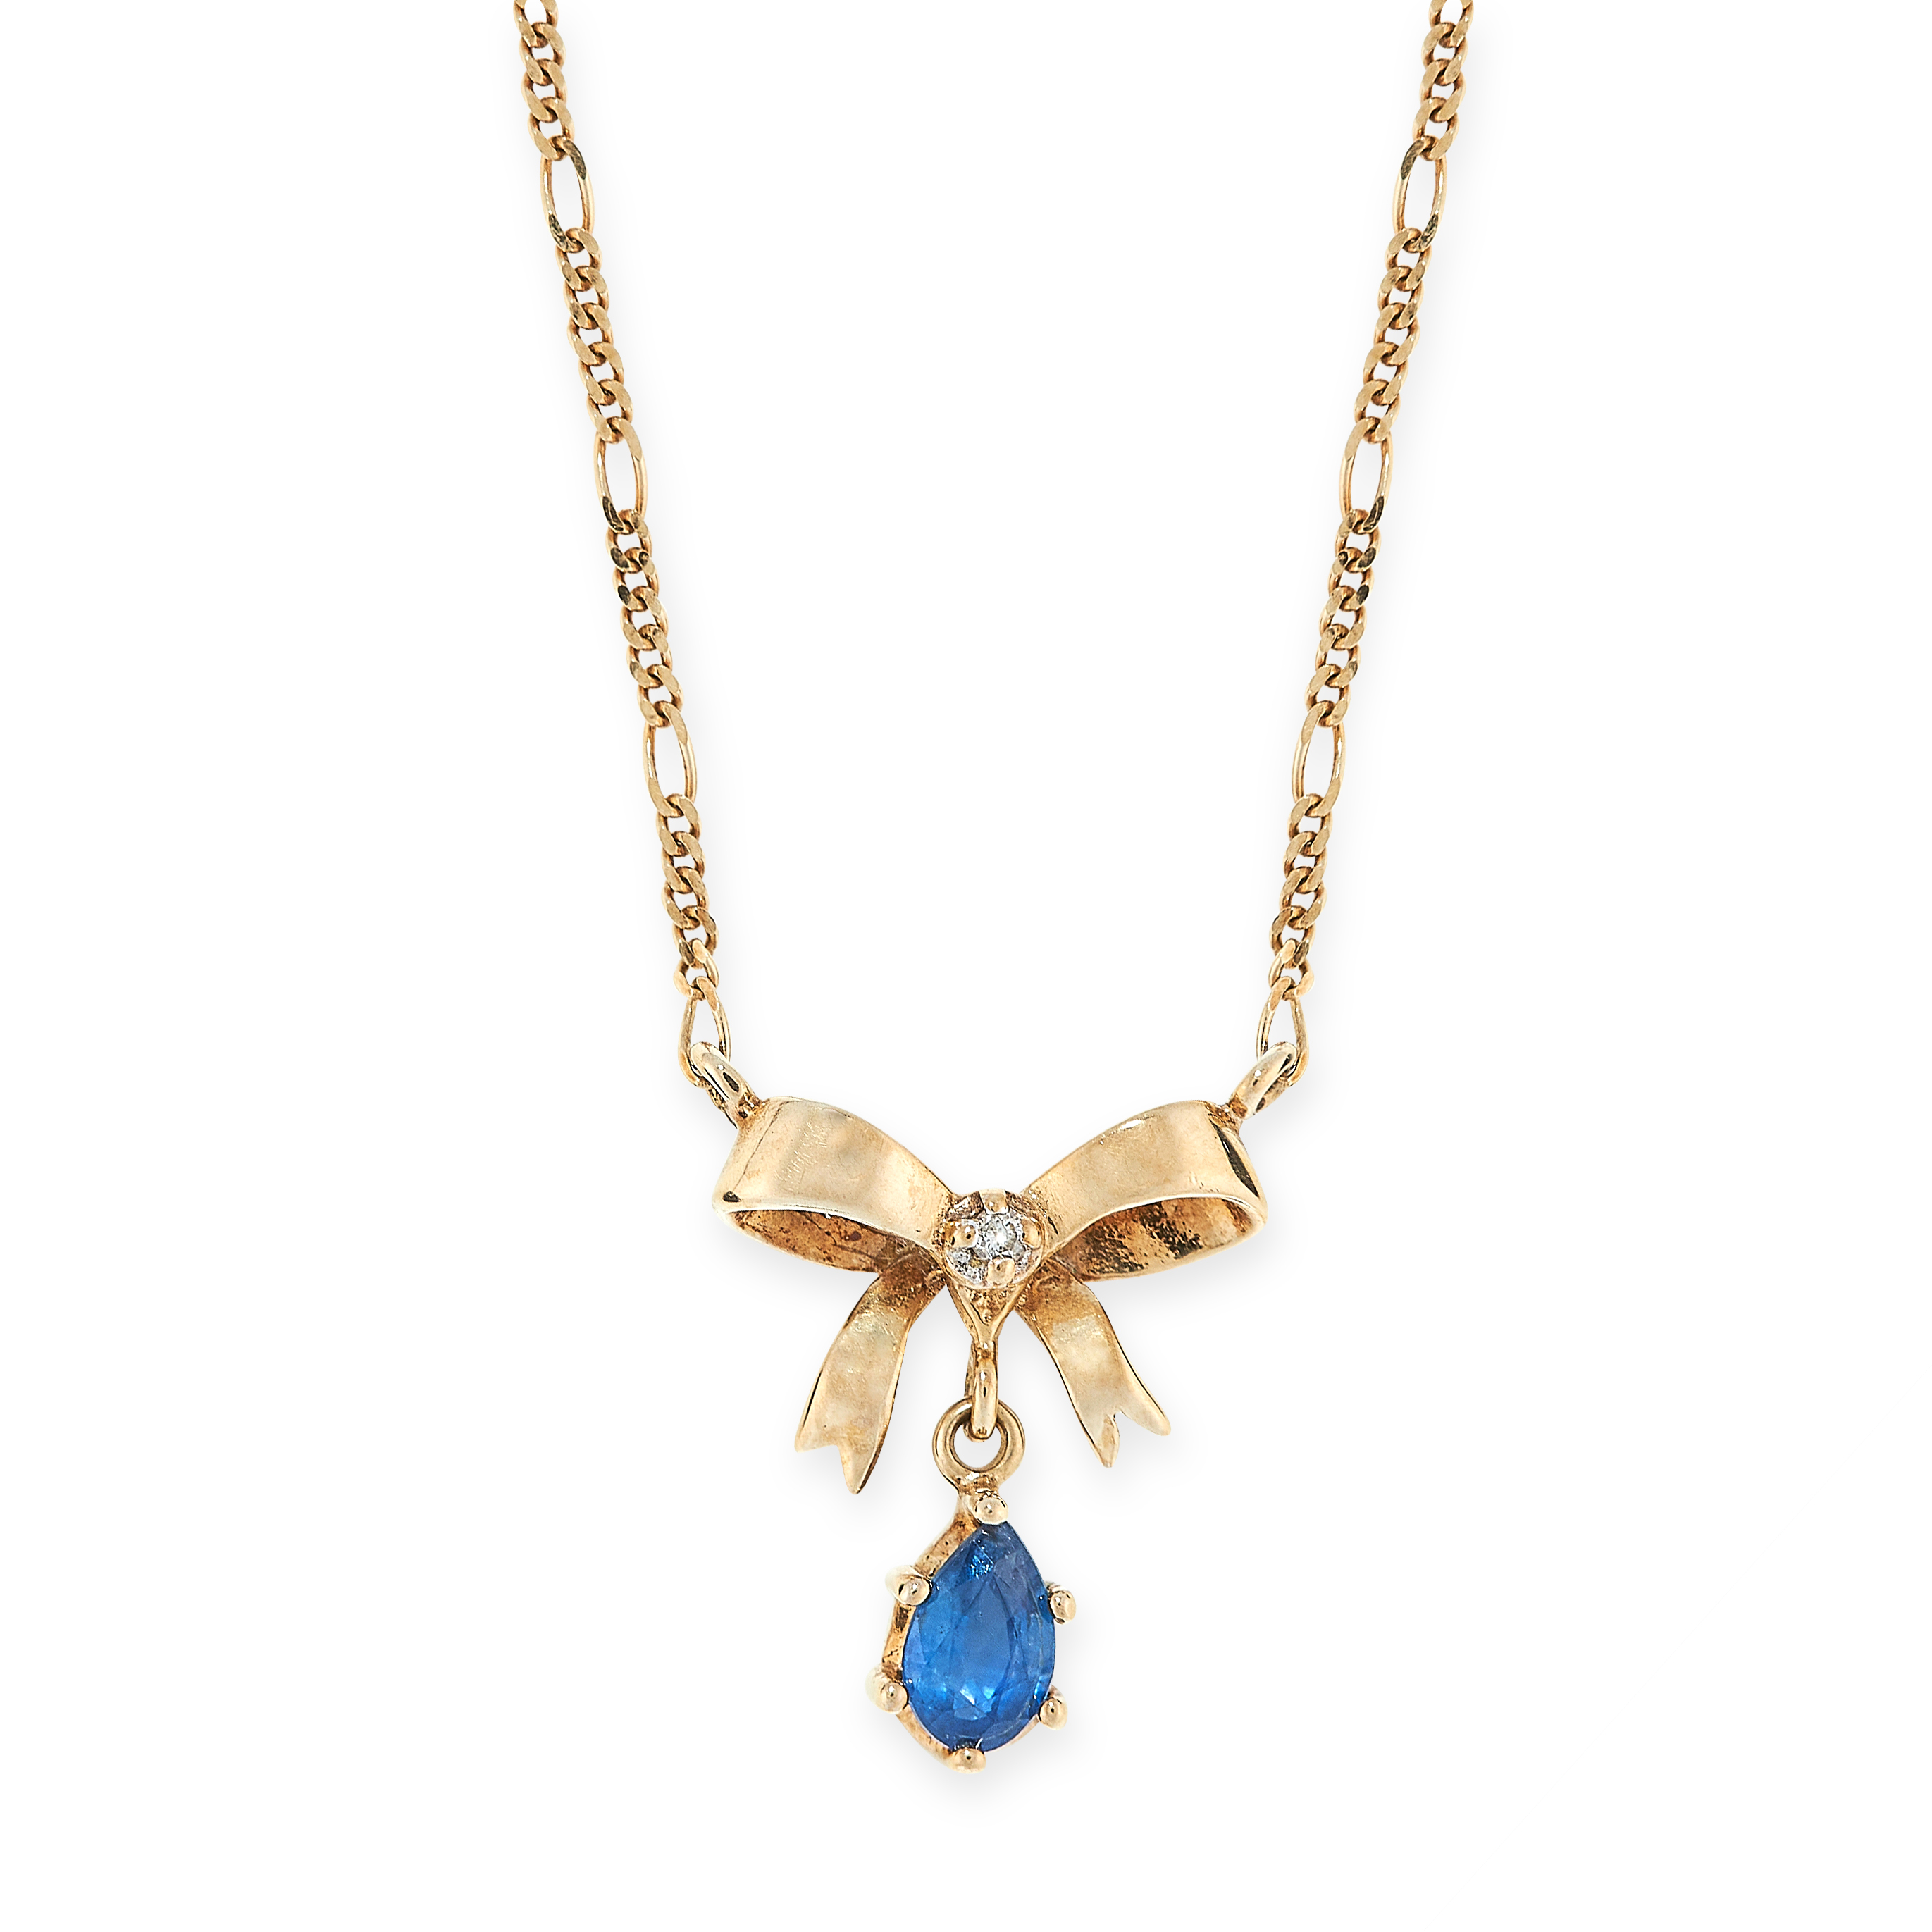 SAPPHIRE BOW PENDANT NECKLACE in the form of a bow set with a white gemstone and suspending a pear